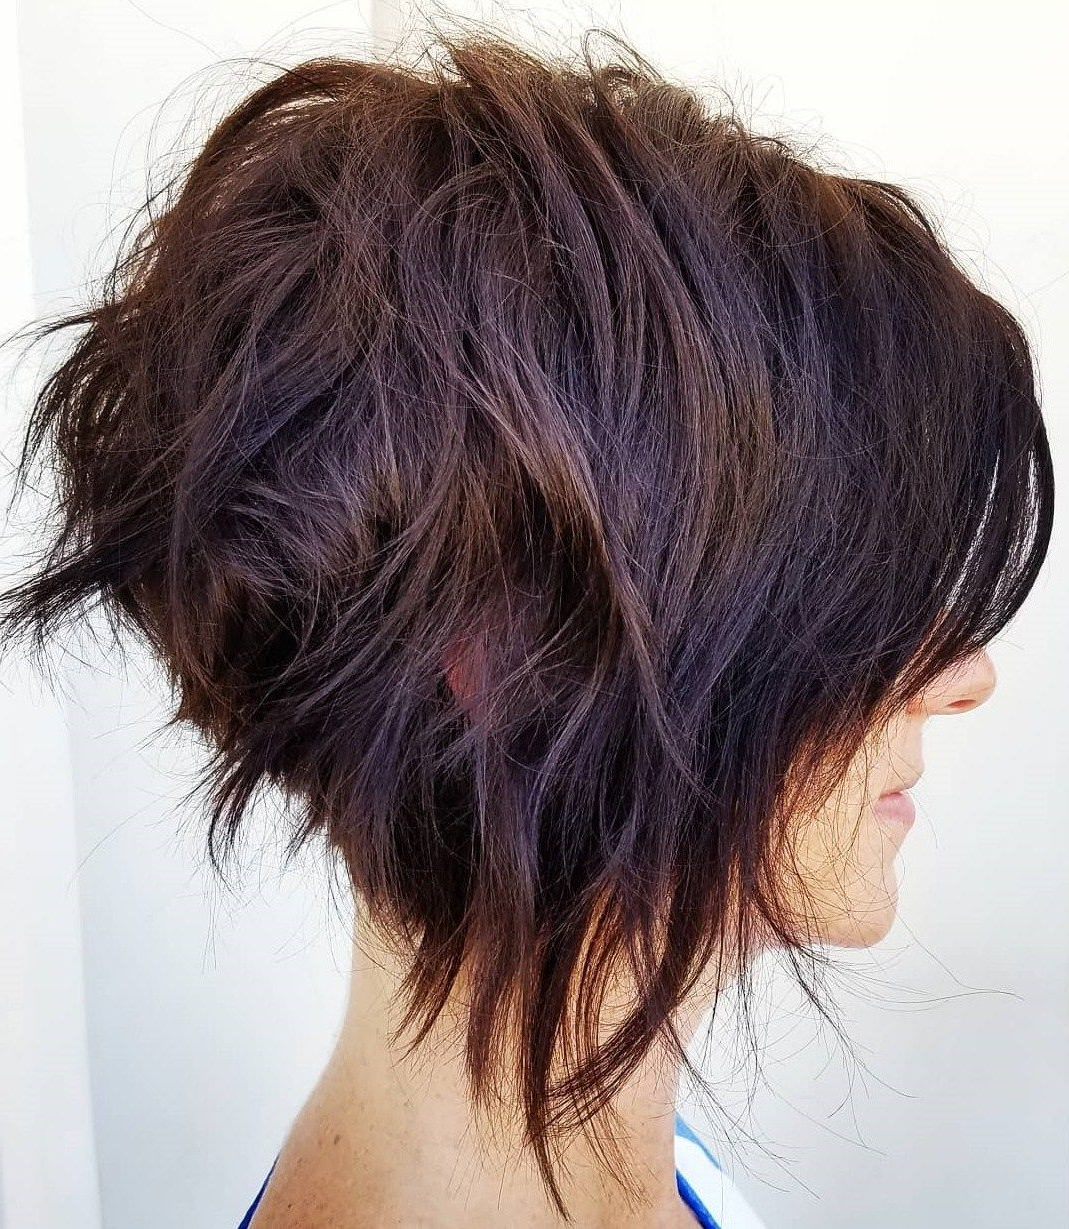 Messy Shaggy Inverted Bob With Subtle Highlights | Curly Hair In Intended For Black Curly Inverted Bob Hairstyles For Thick Hair (View 2 of 20)